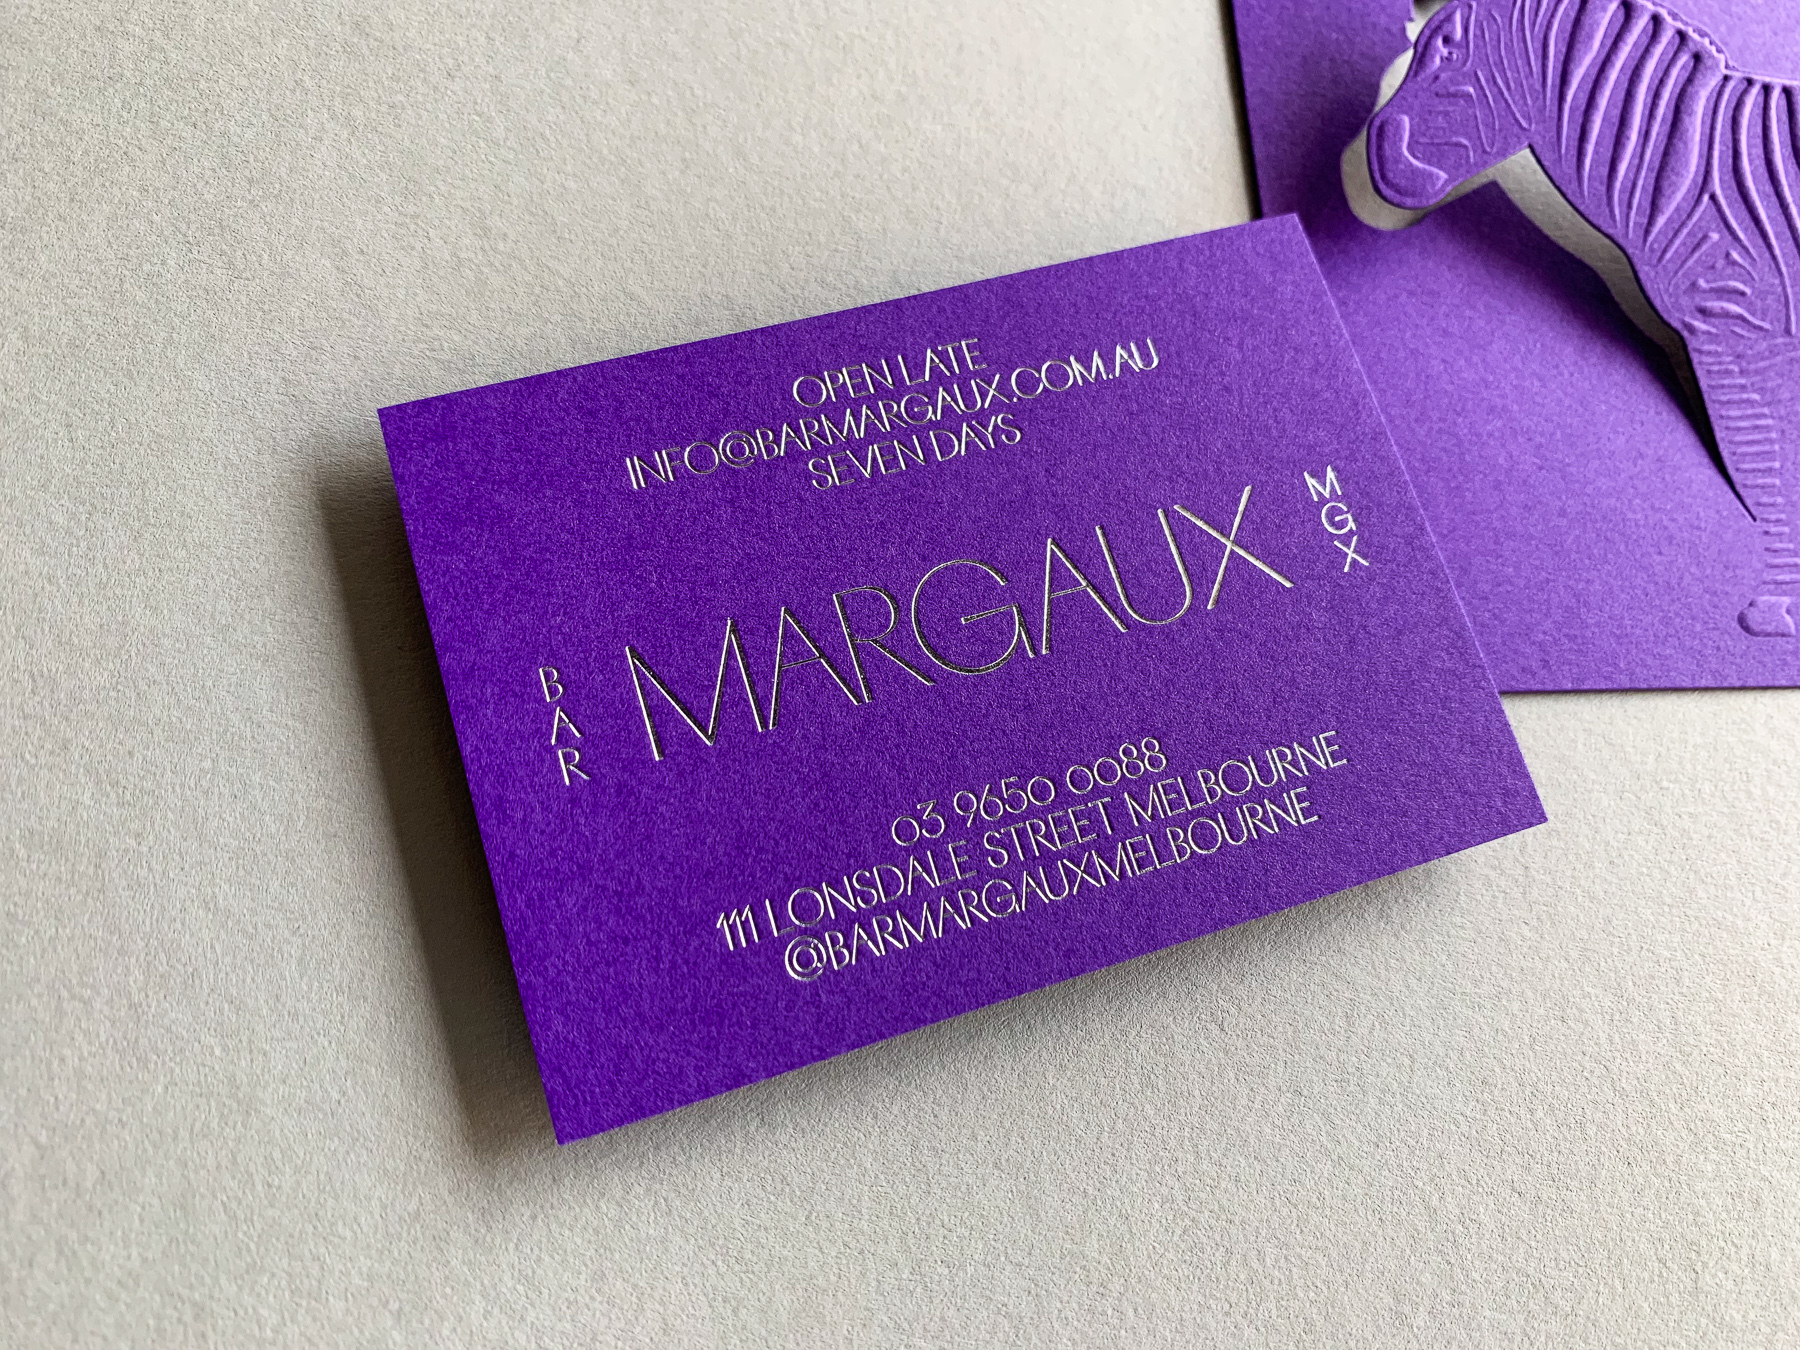 Foil business cards for Bar Margaux on Colorplan Purple 270gsm 1